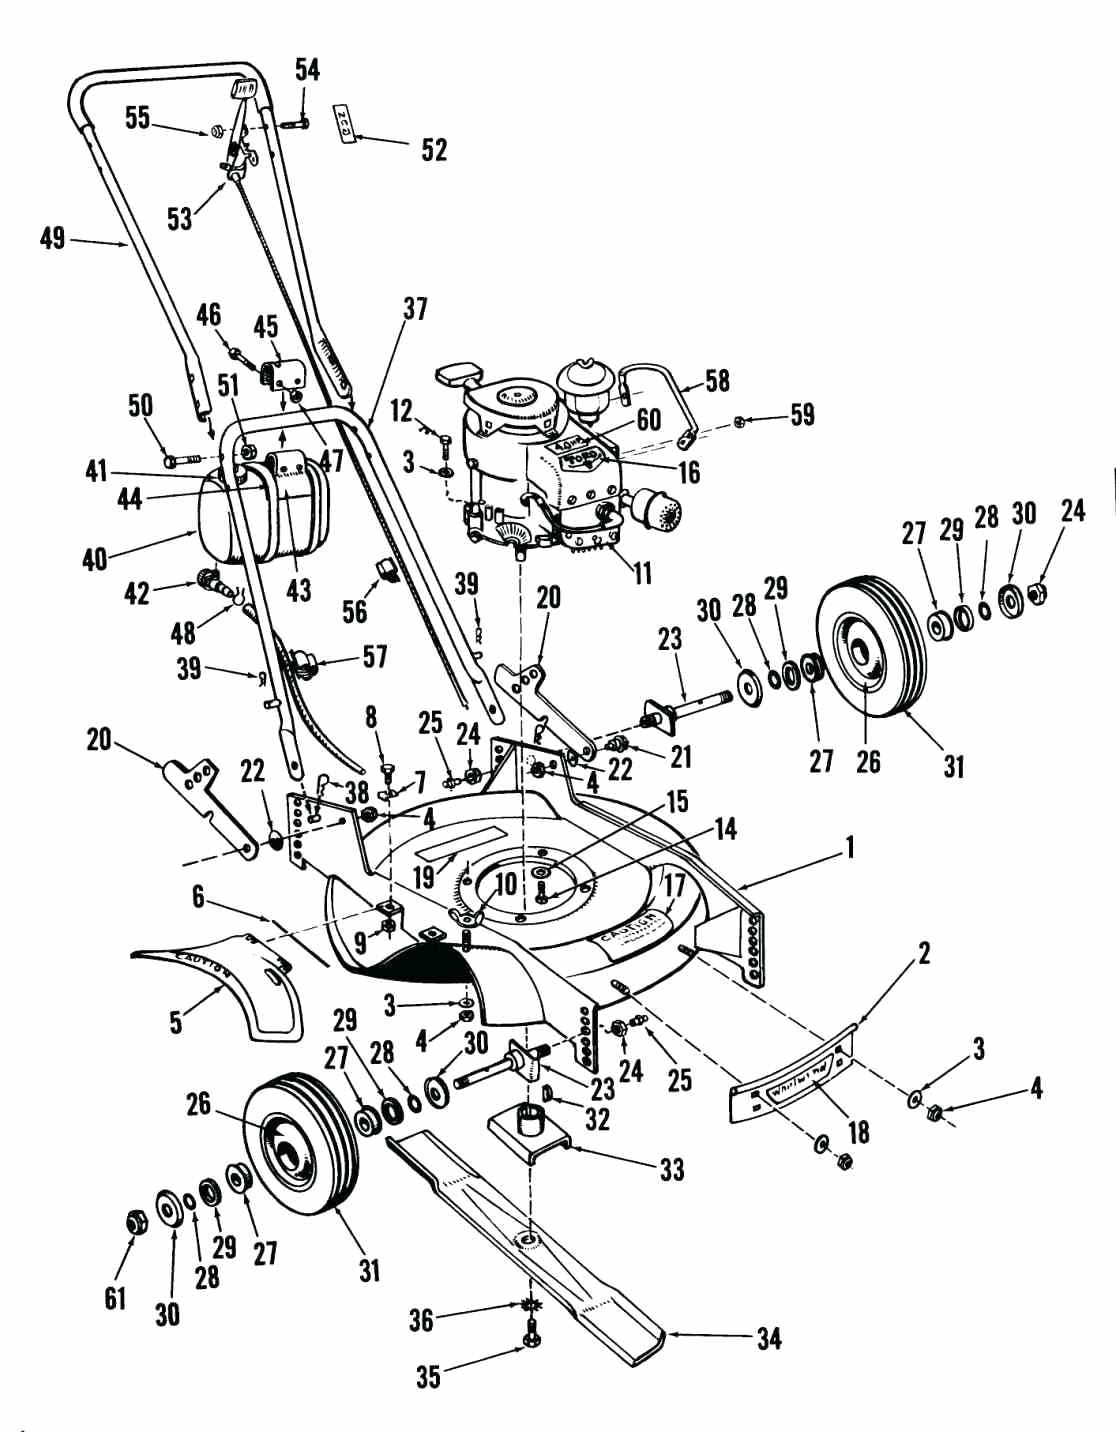 Lawn Mower Drawing At Free For Personal Use Honda Engine Parts Diagram 1116x1432 Toro Recycler Murray Self